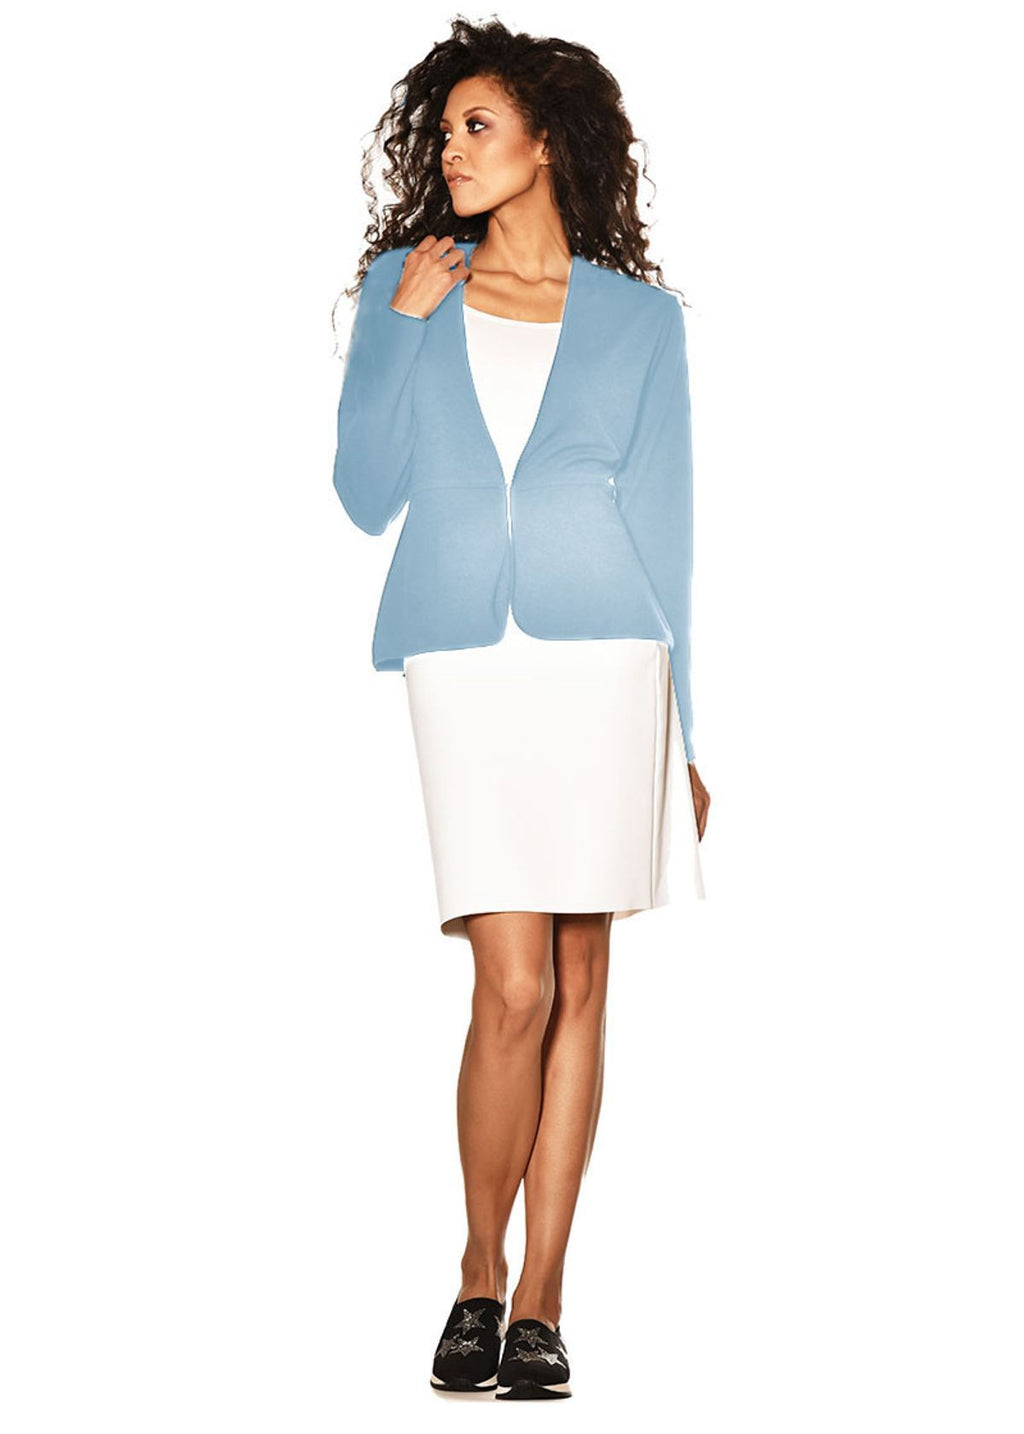 PAULA RYAN Waisted Cardigan 8101-Glacier-XS Jacket